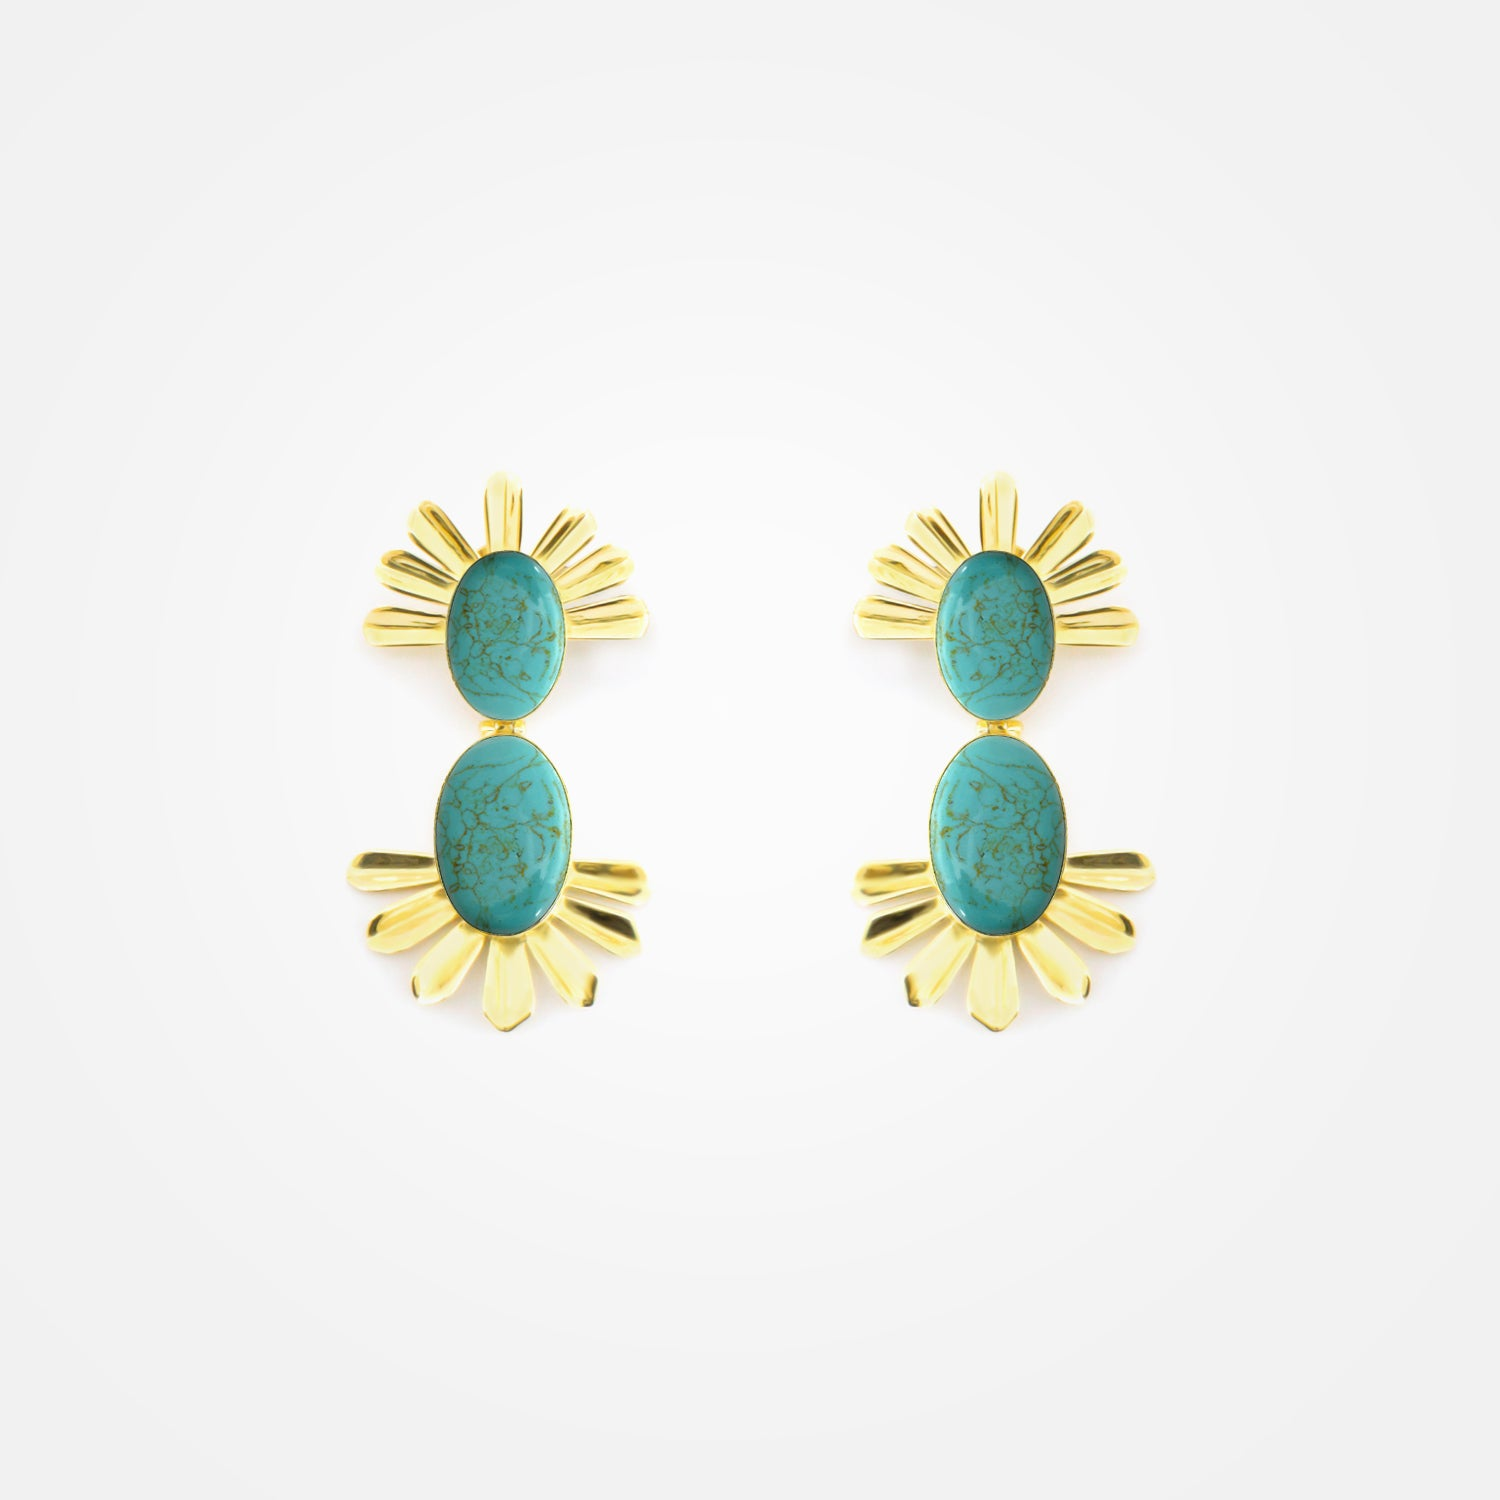 22k Gold Plated Radiant Set - Earrings with Turquoise Stones by Daniel Espinosa